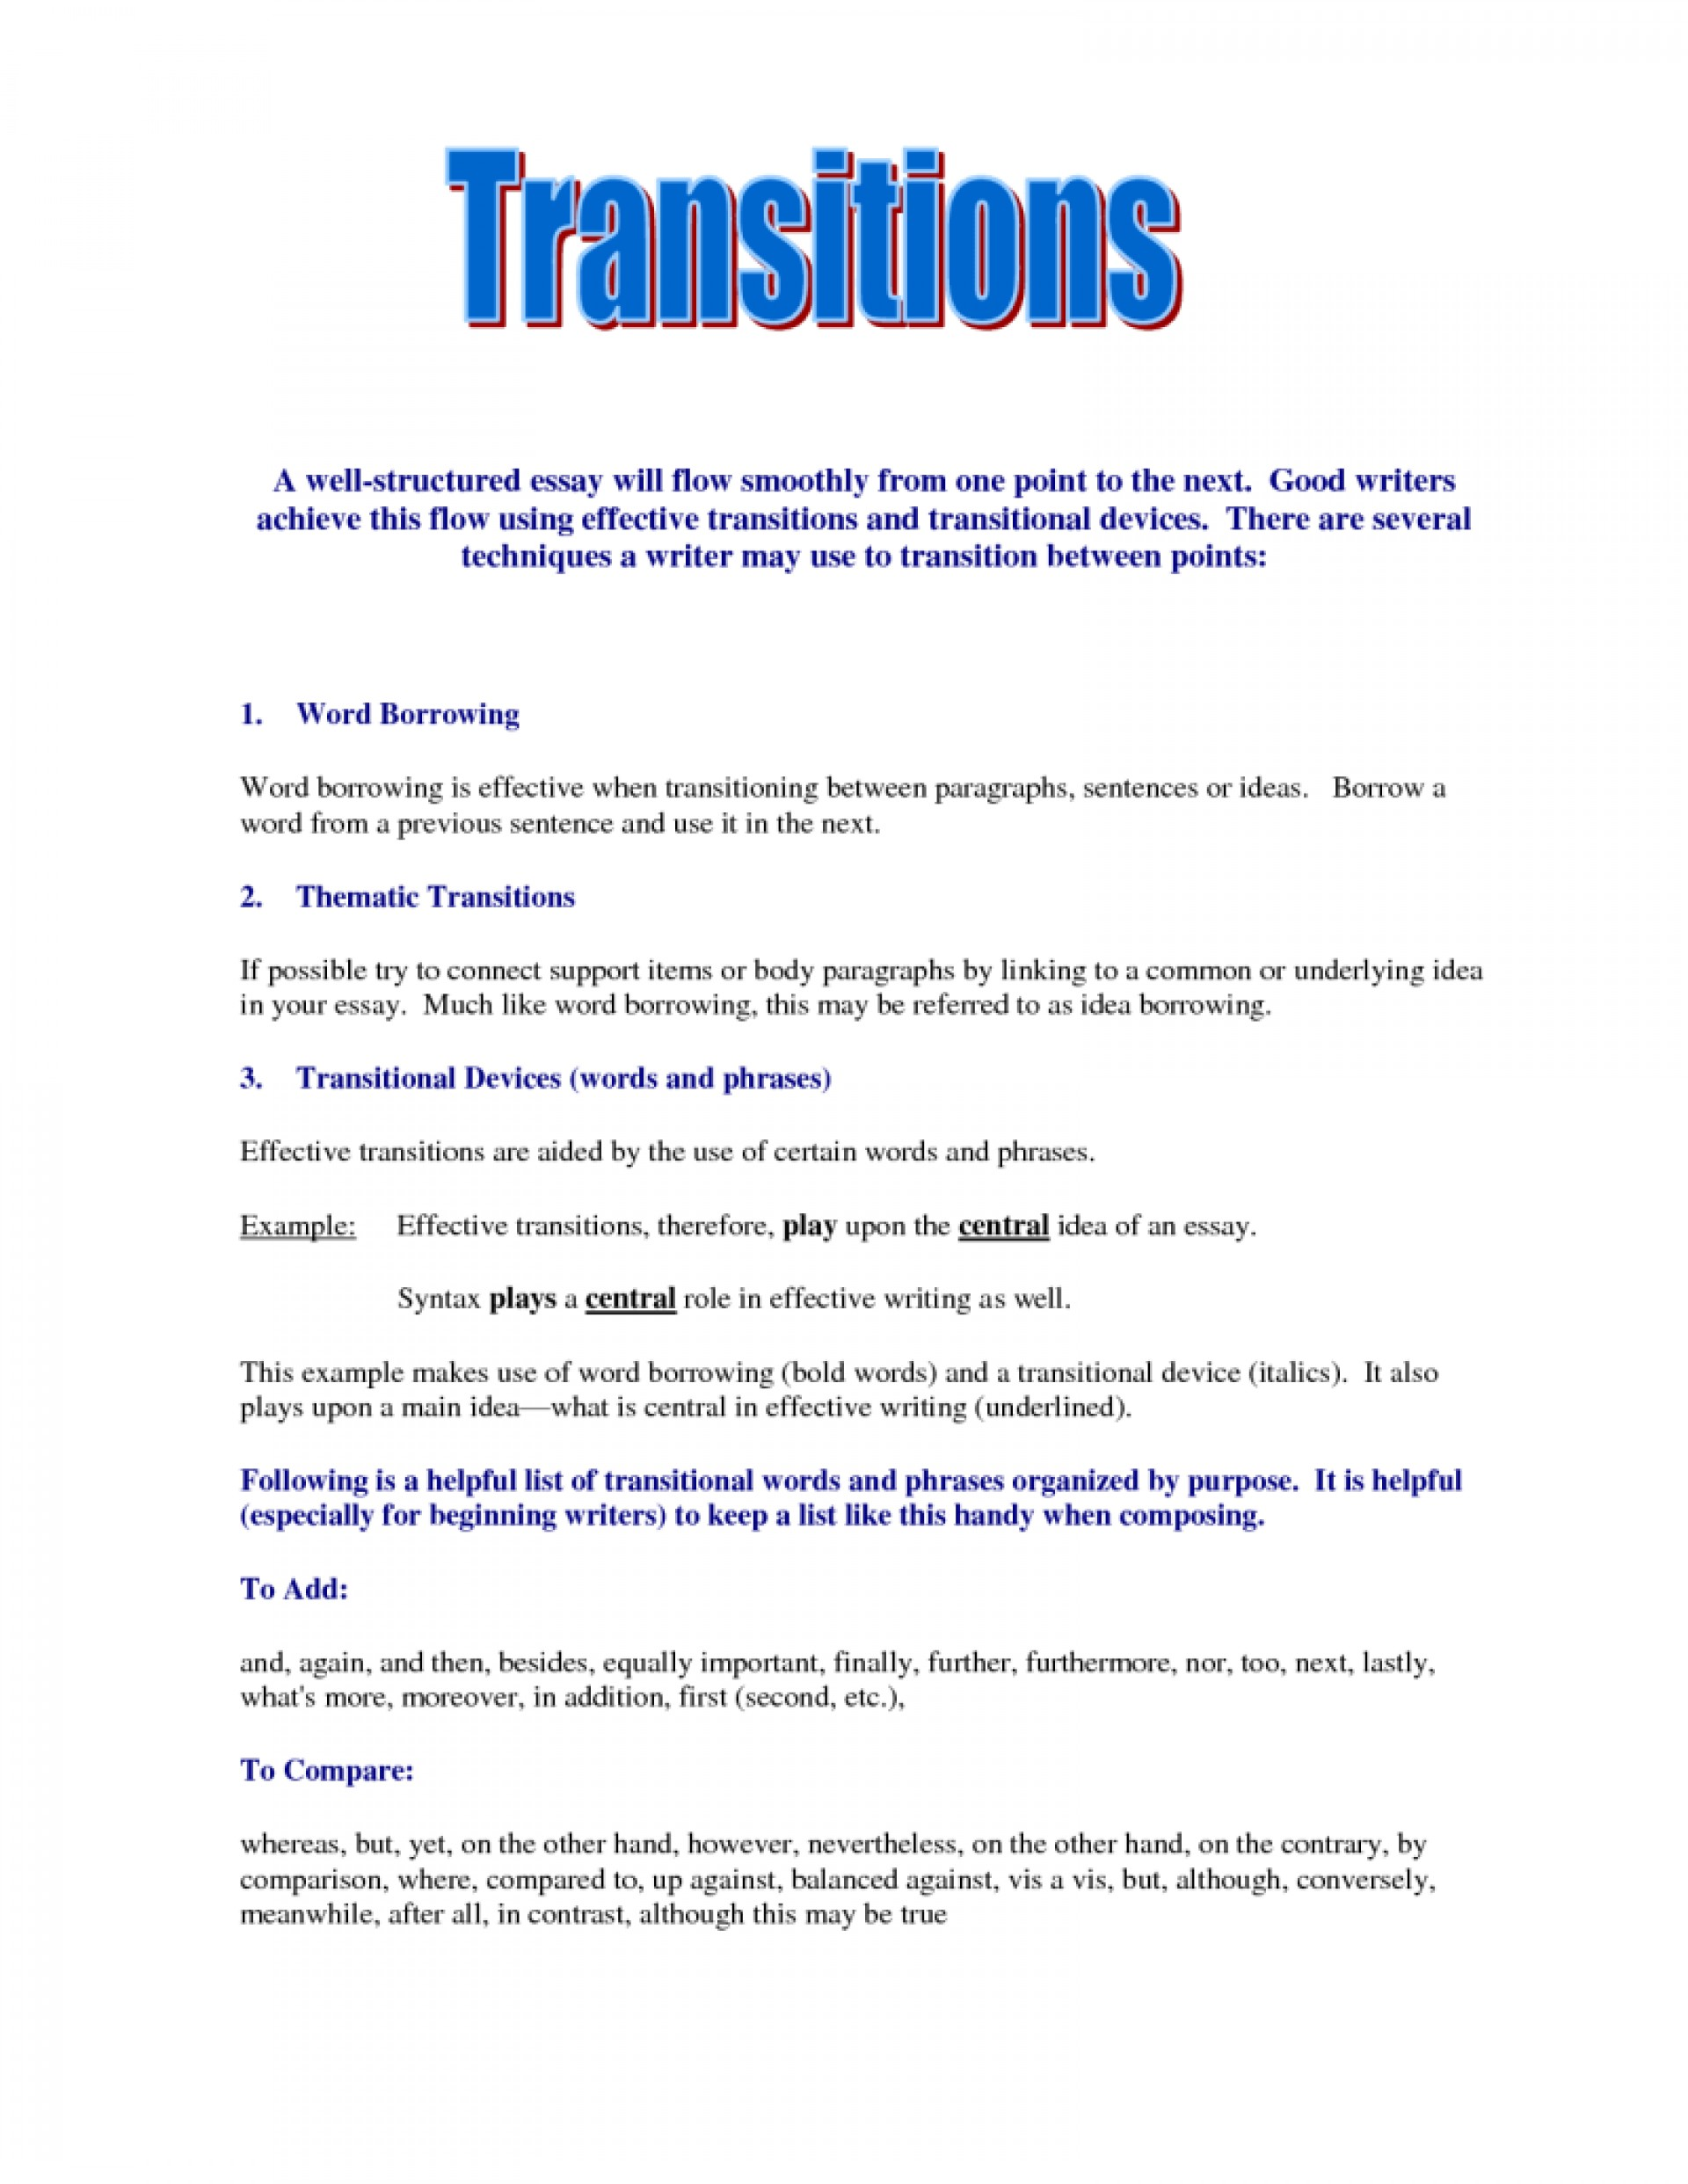 027 Transition Words And Phrases Fors Supporting Paragraphs Paragraph Transitions Ucsb Writing Program First Body Awesome Collection Of Sentences Examples You Amazing For Essays Opinion Narrative 5th Grade Expository 1920